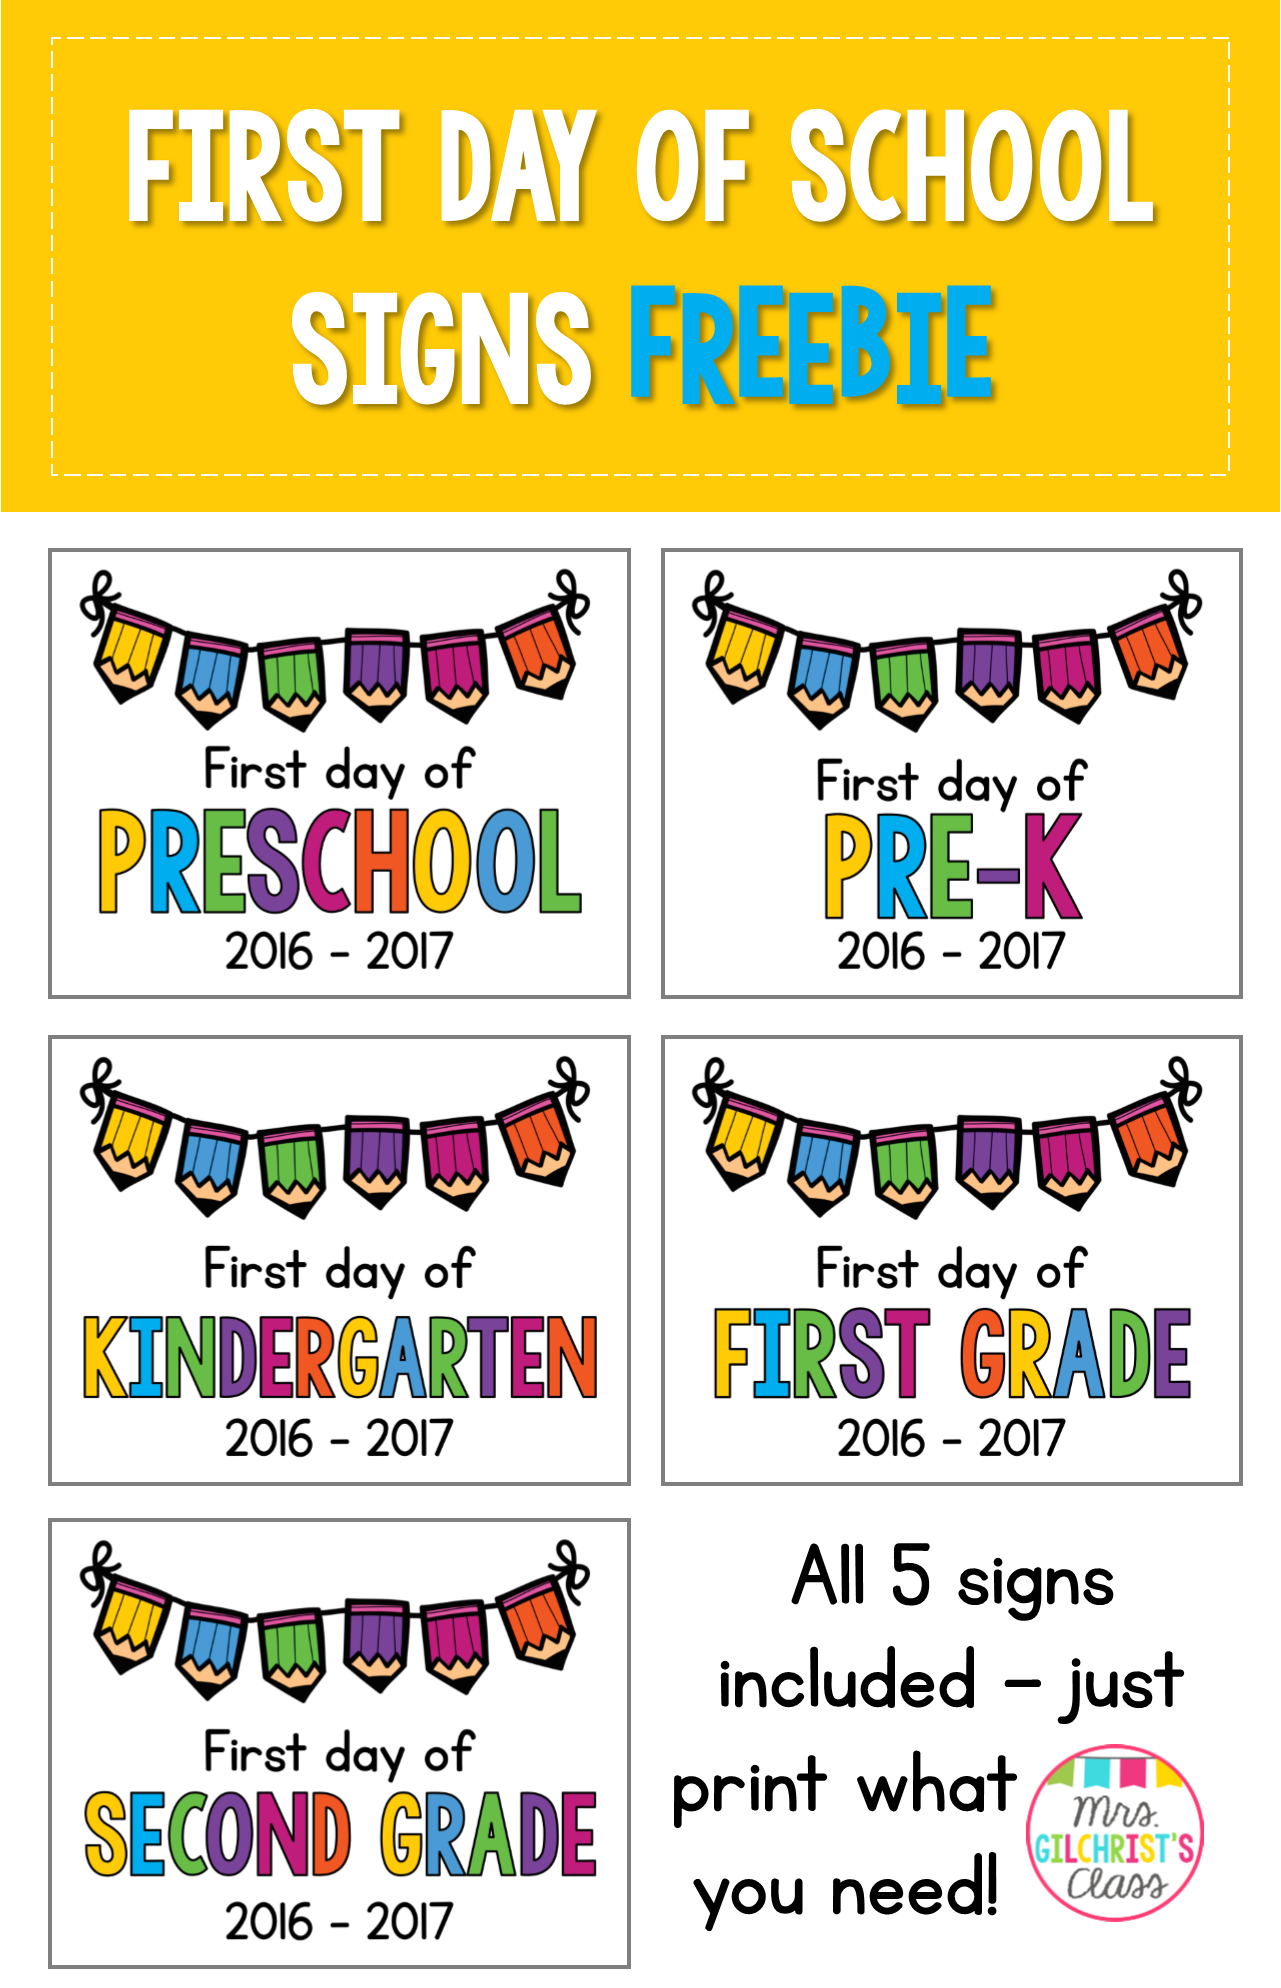 First Day Of Fall 2020.2019 2020 First Day Of School Signs Freebie Preschool